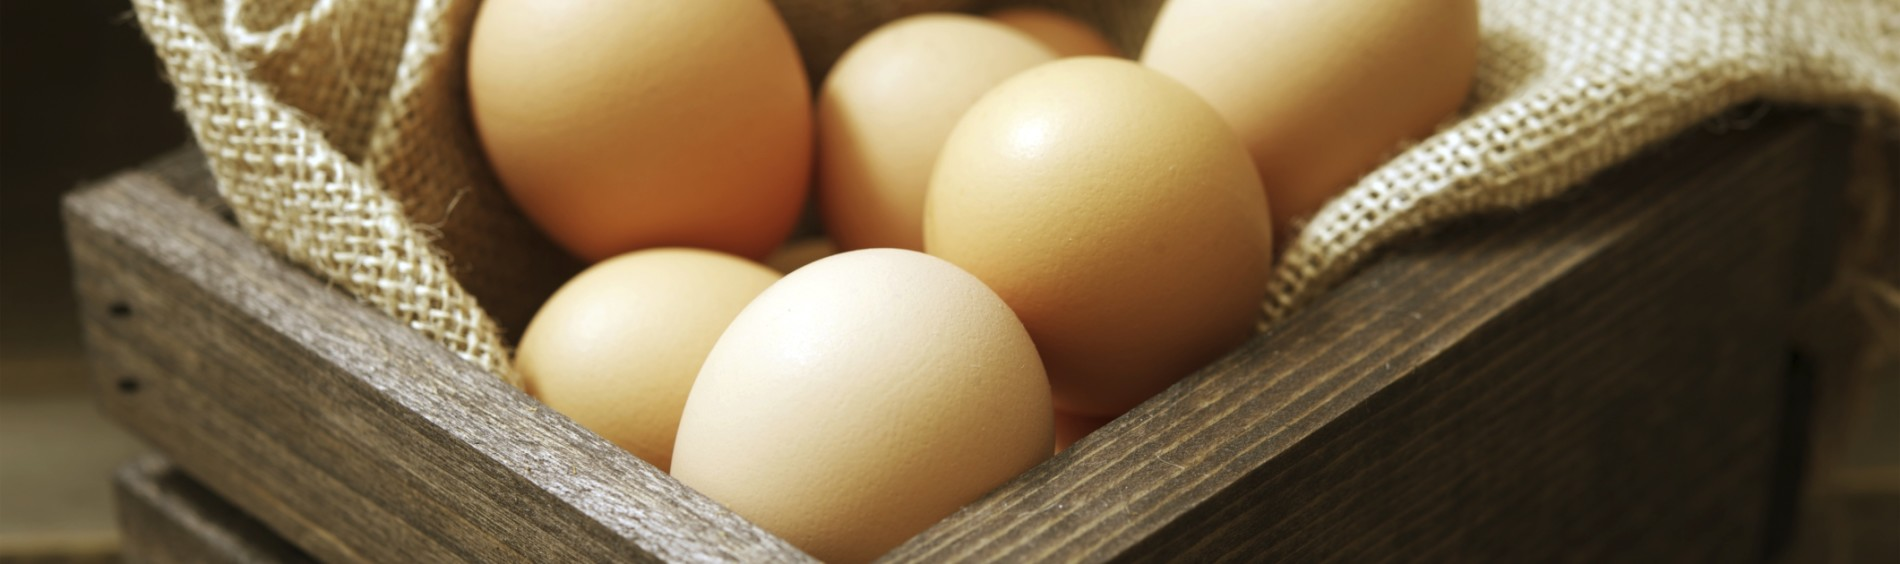 Cage free organic eggs in a basket